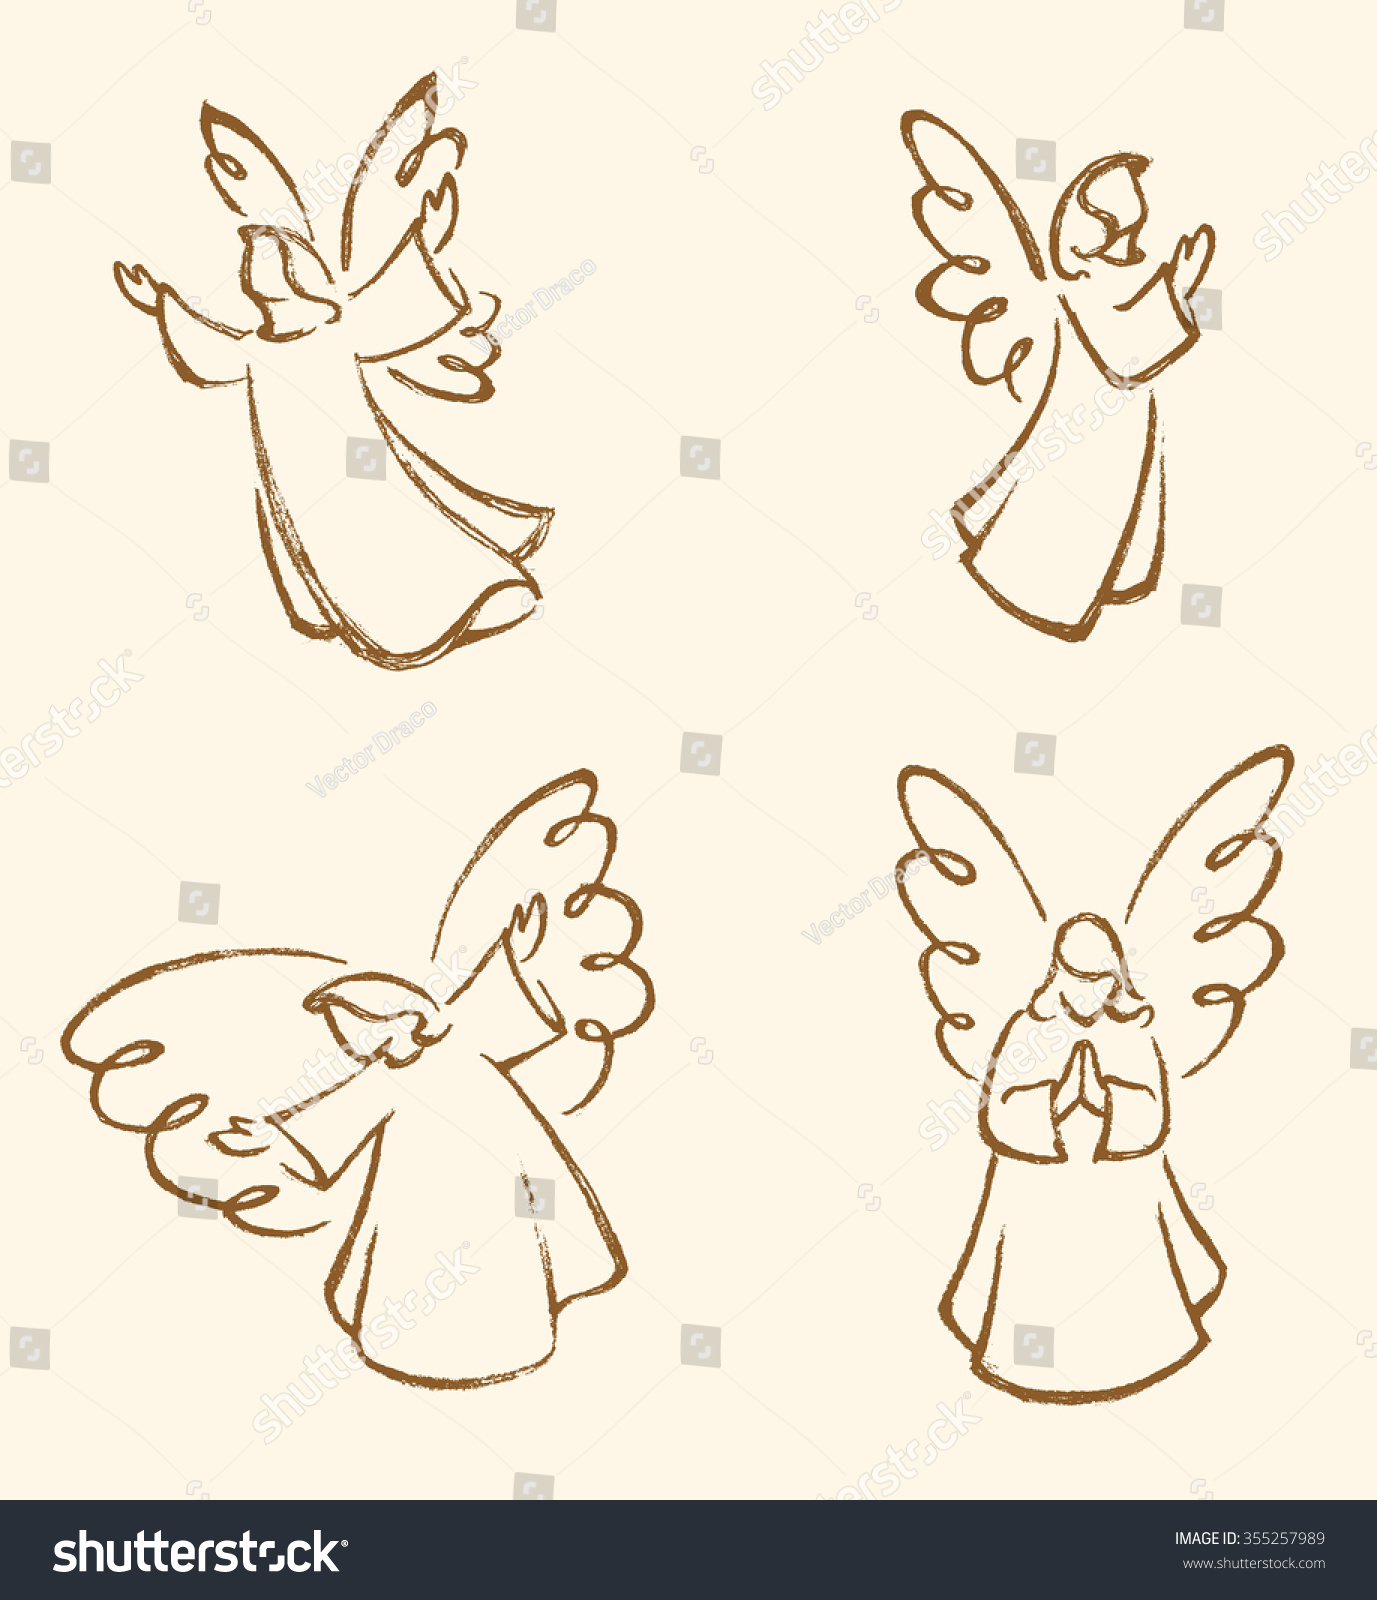 angel sketch setvariations angels traced my stock vector 355257989